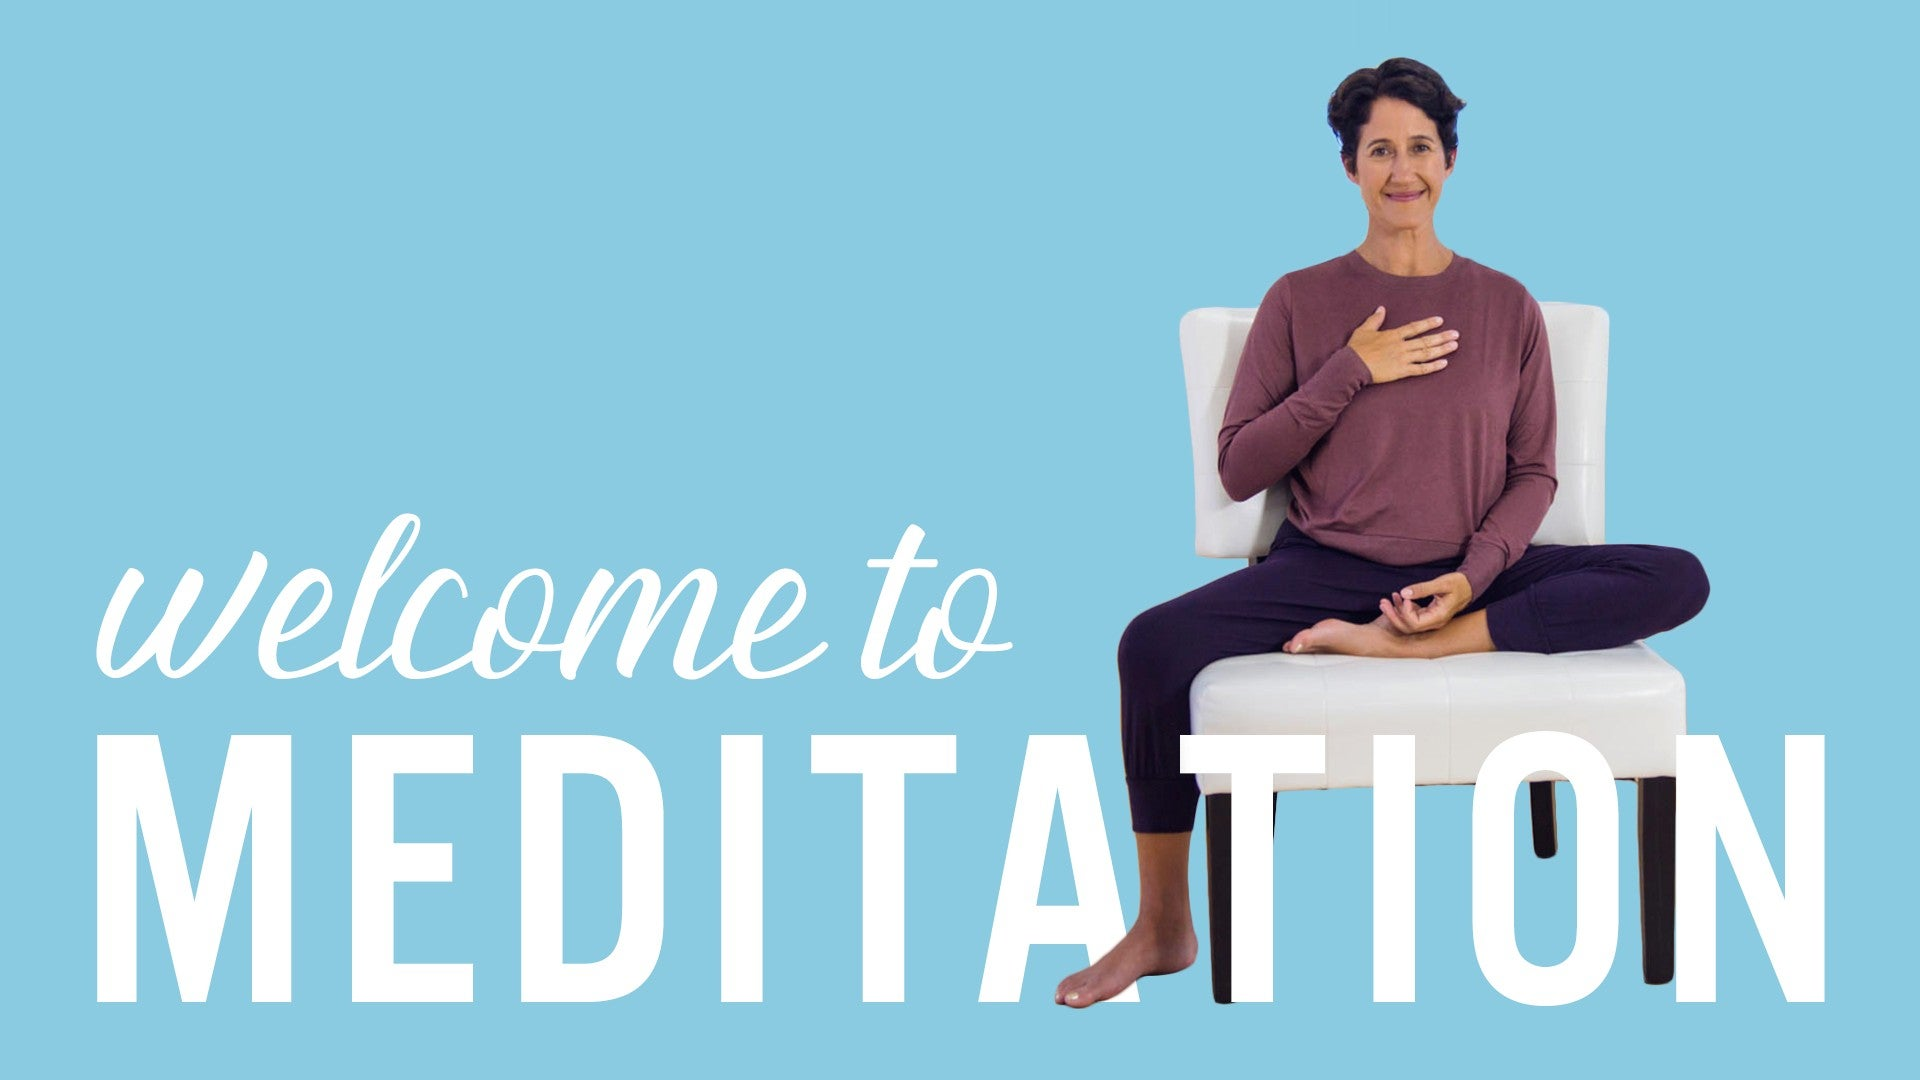 Welcome to Meditation Artwork